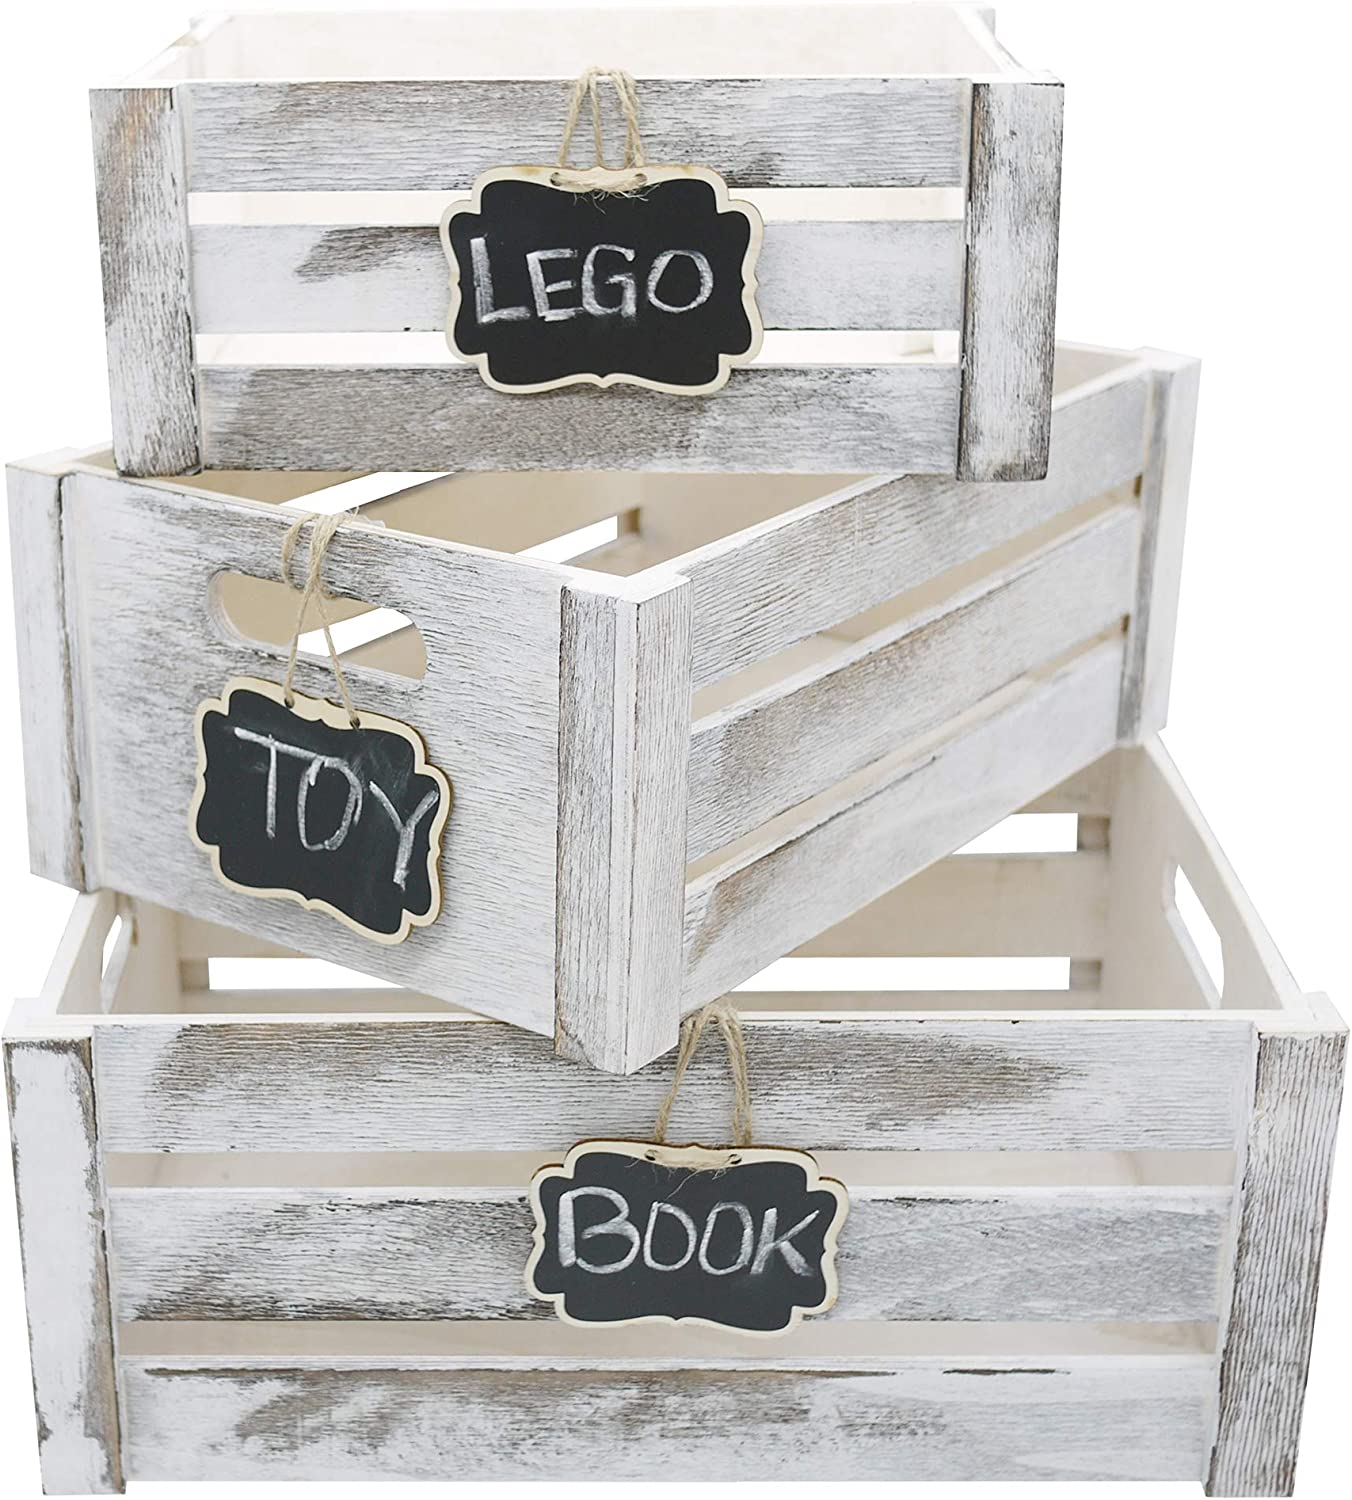 Admired By Nature Home Décor Nesting Organizer Wooden Crates, With Chalkboard, Set of 3, Storage Container, Rustic White w/tag, 3 Count